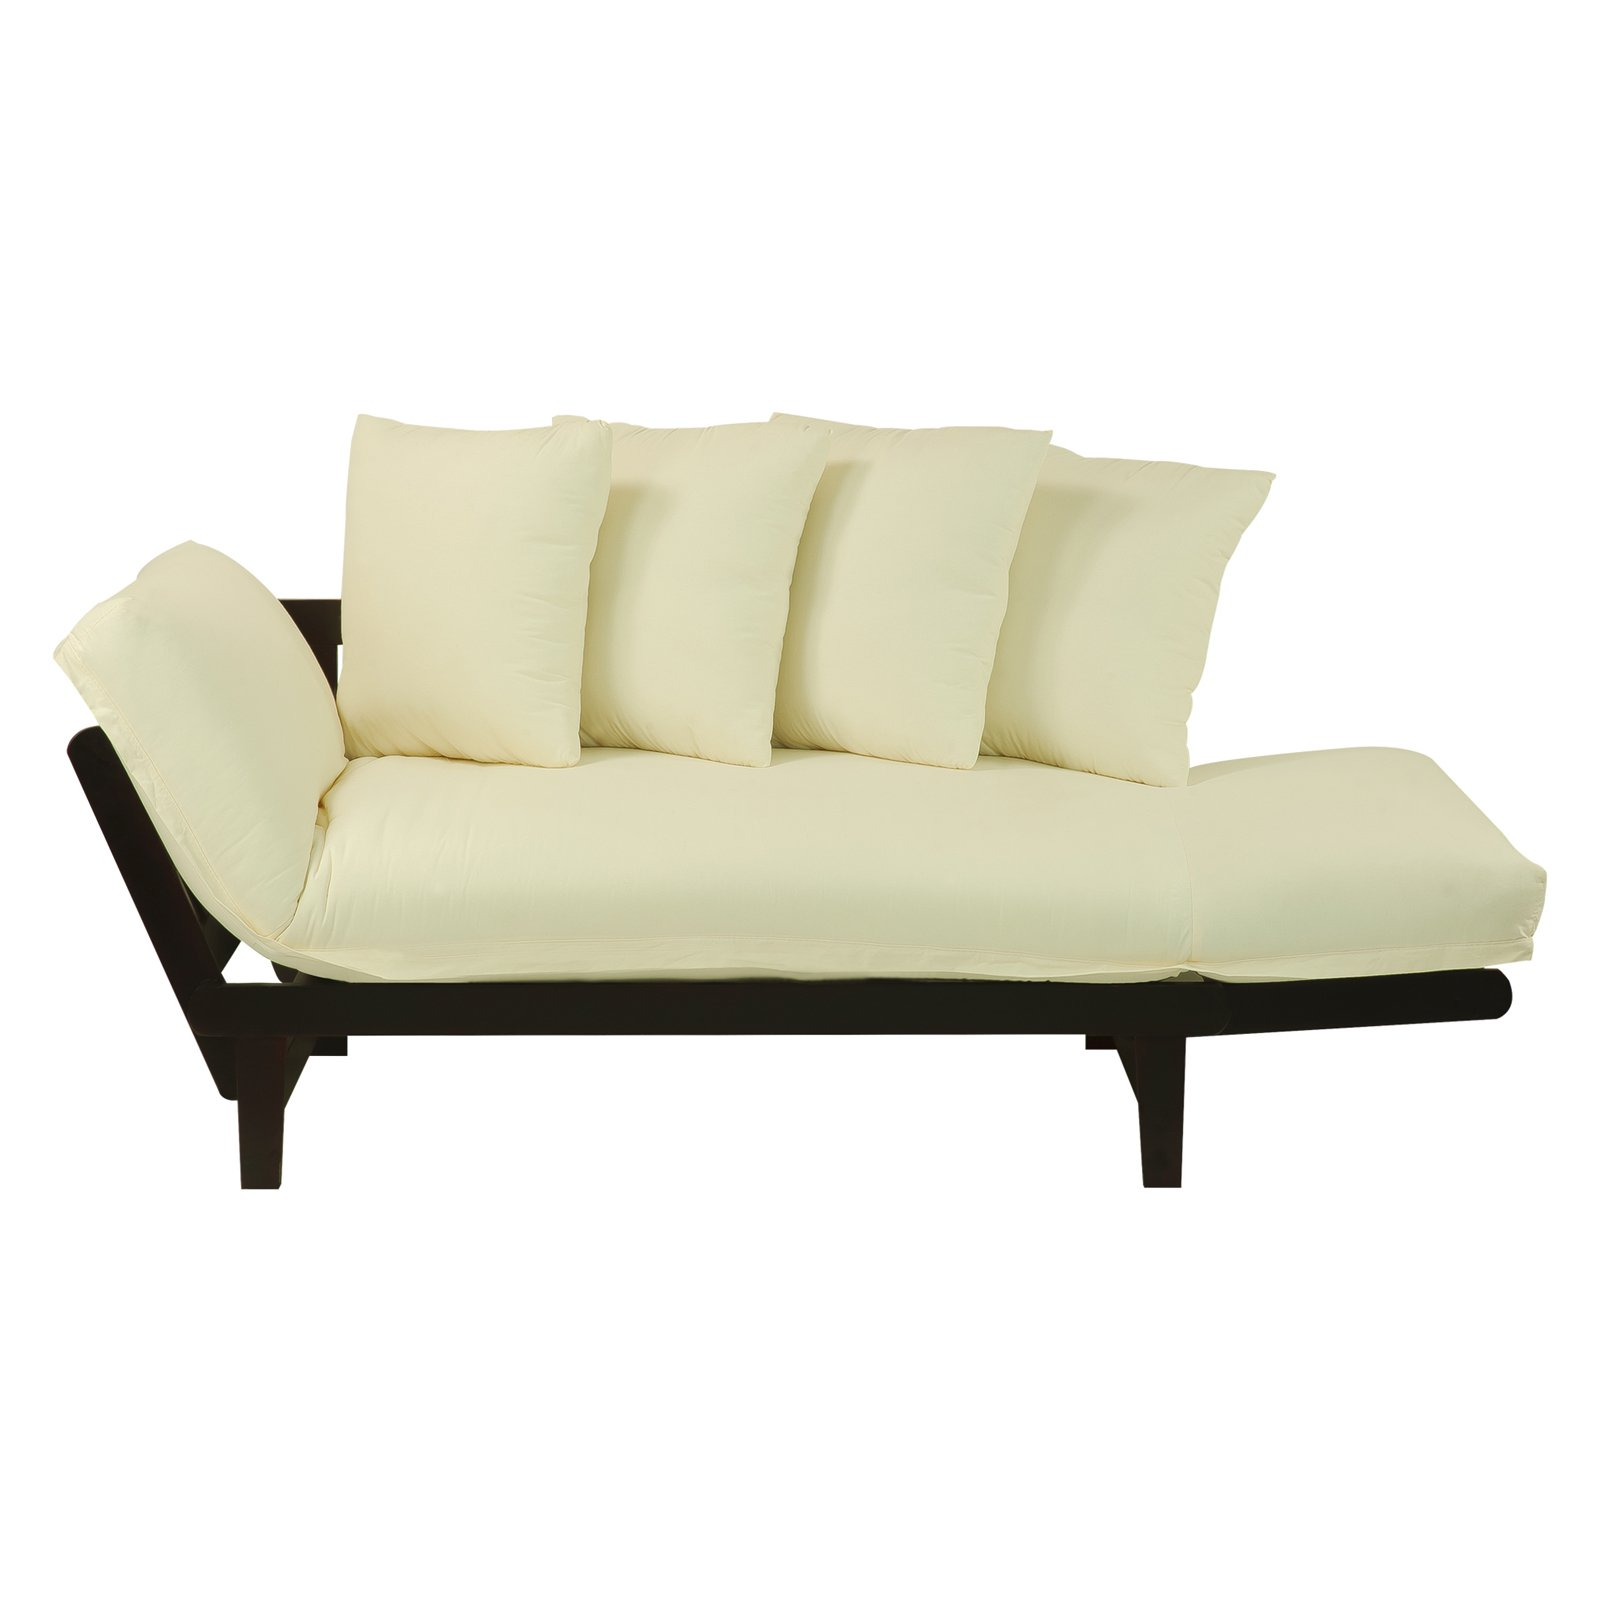 Lounger Espresso Convertible Sleeper Futon Sofa Bed Multi Position Couch Ivory